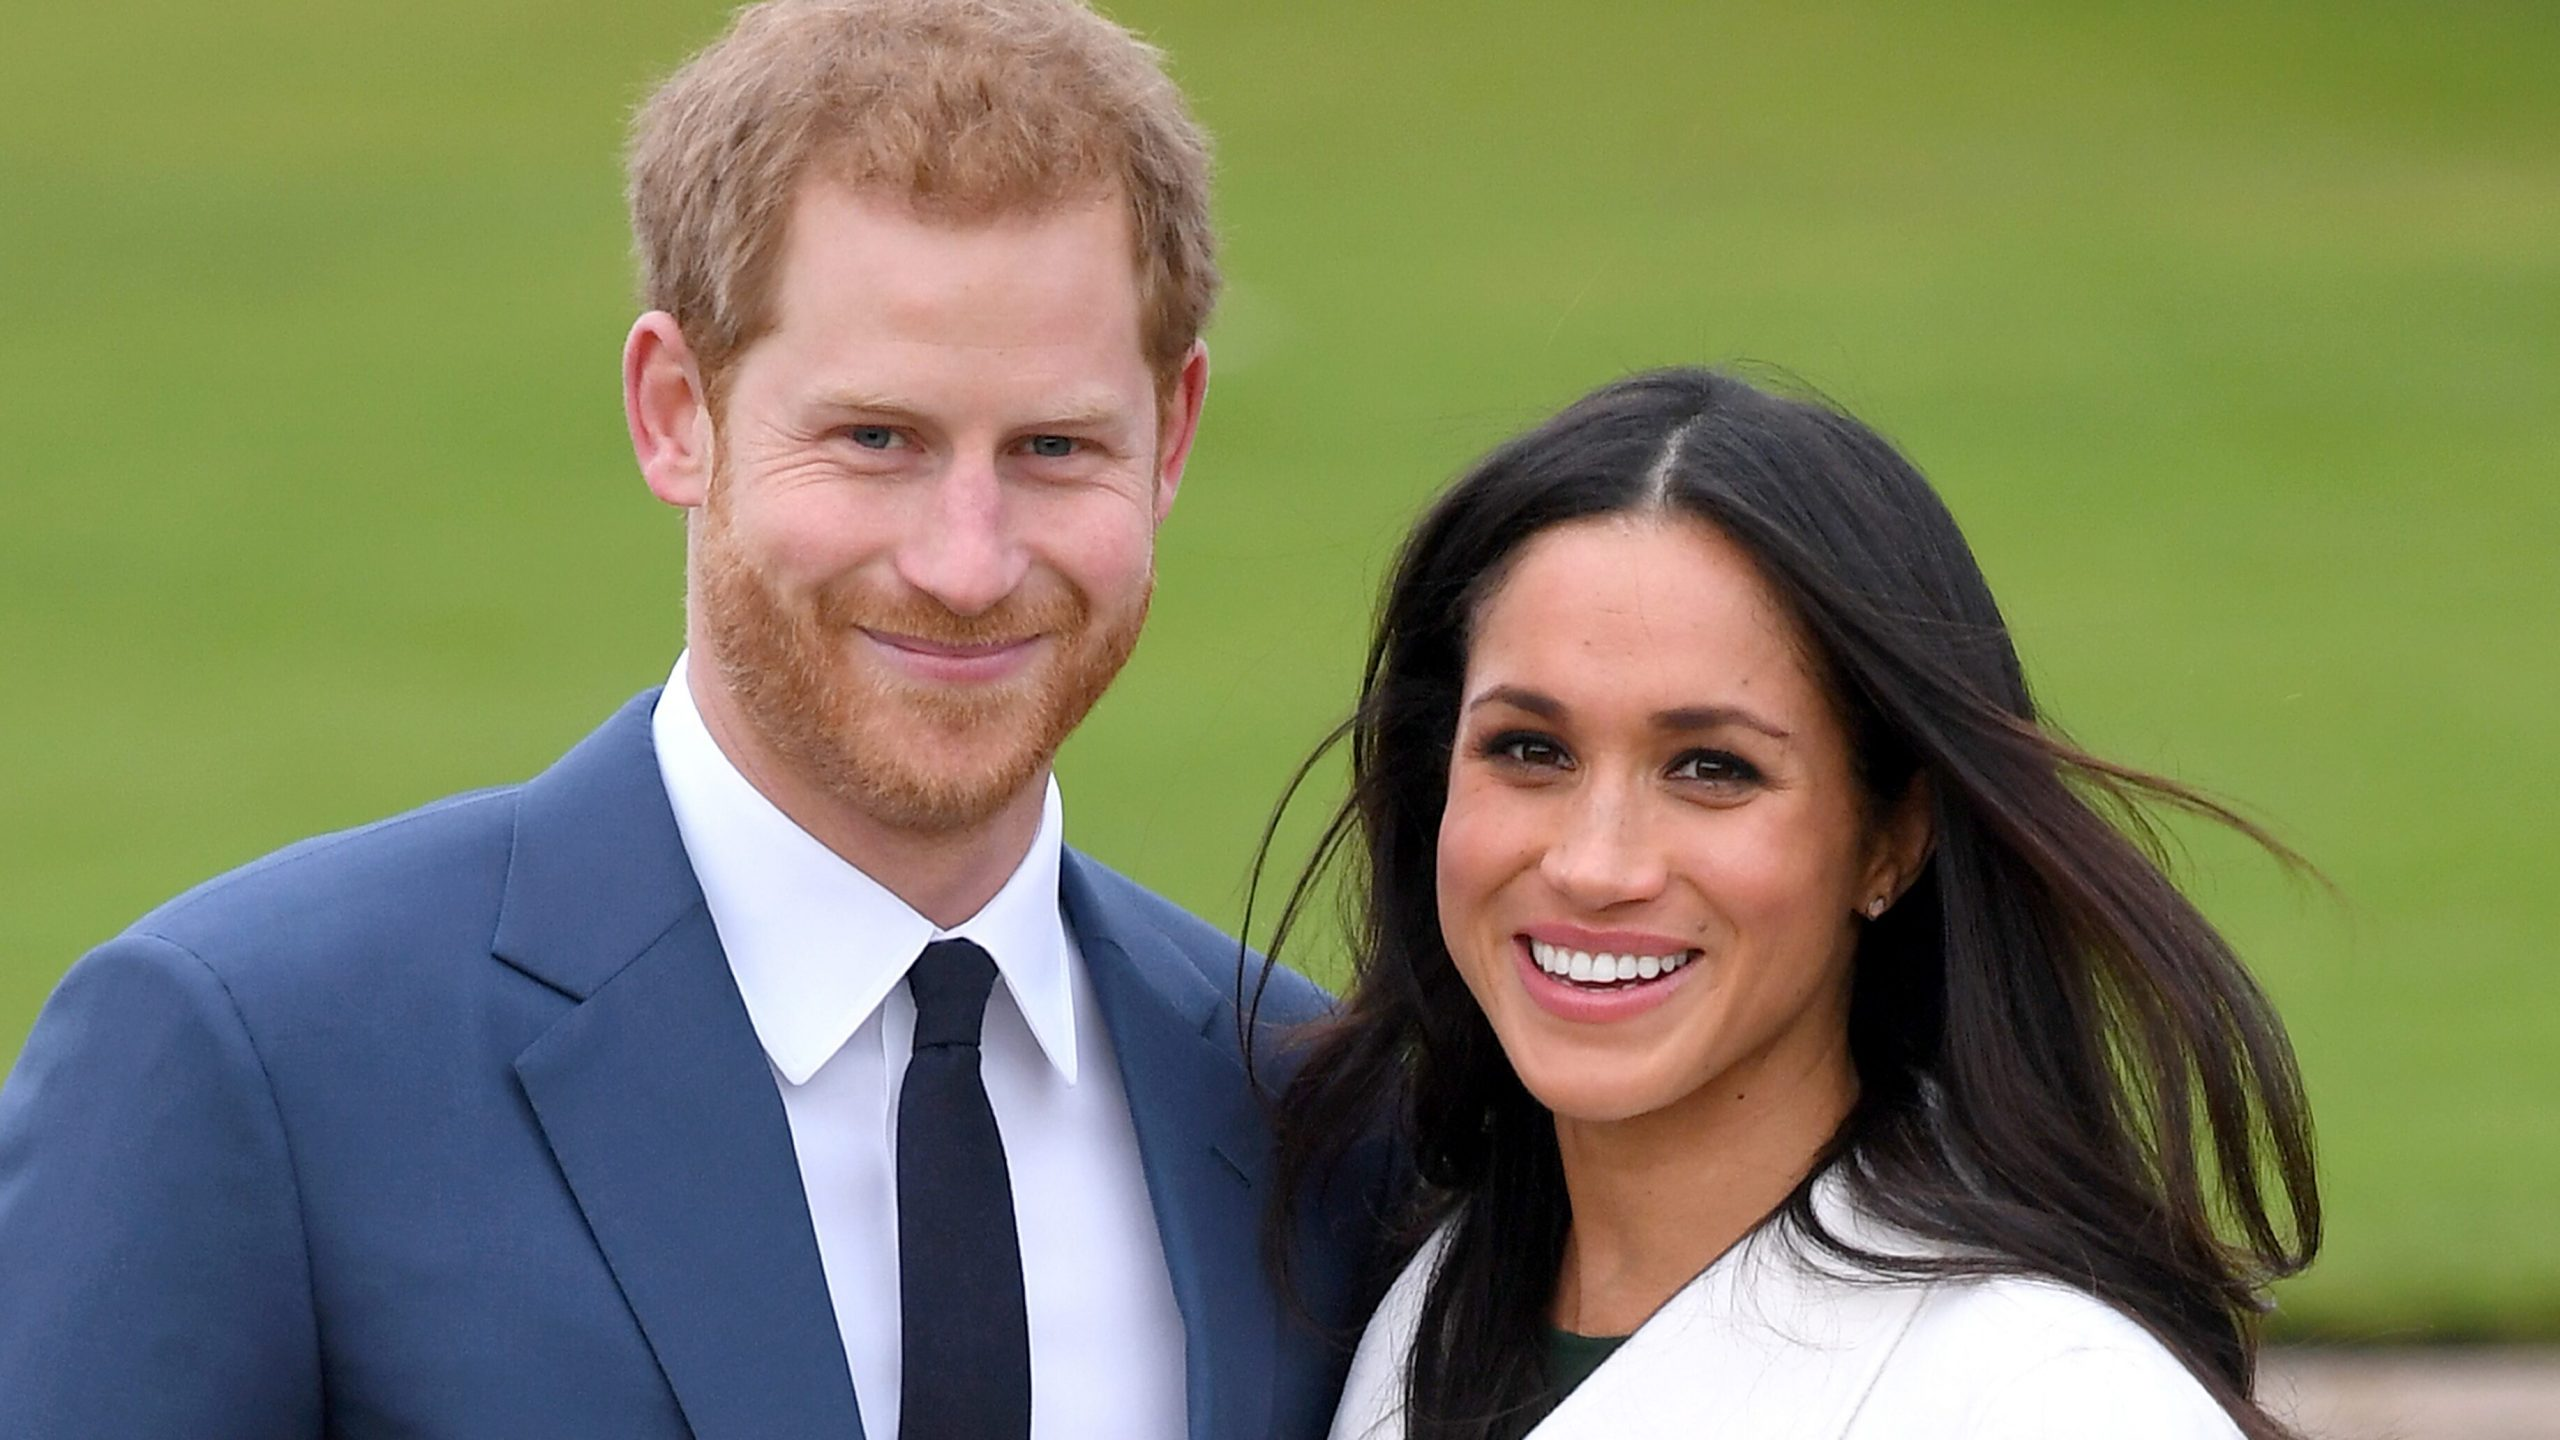 Prince Harry, Meghan Markle share photos of their mothers and younger selves in website relaunch